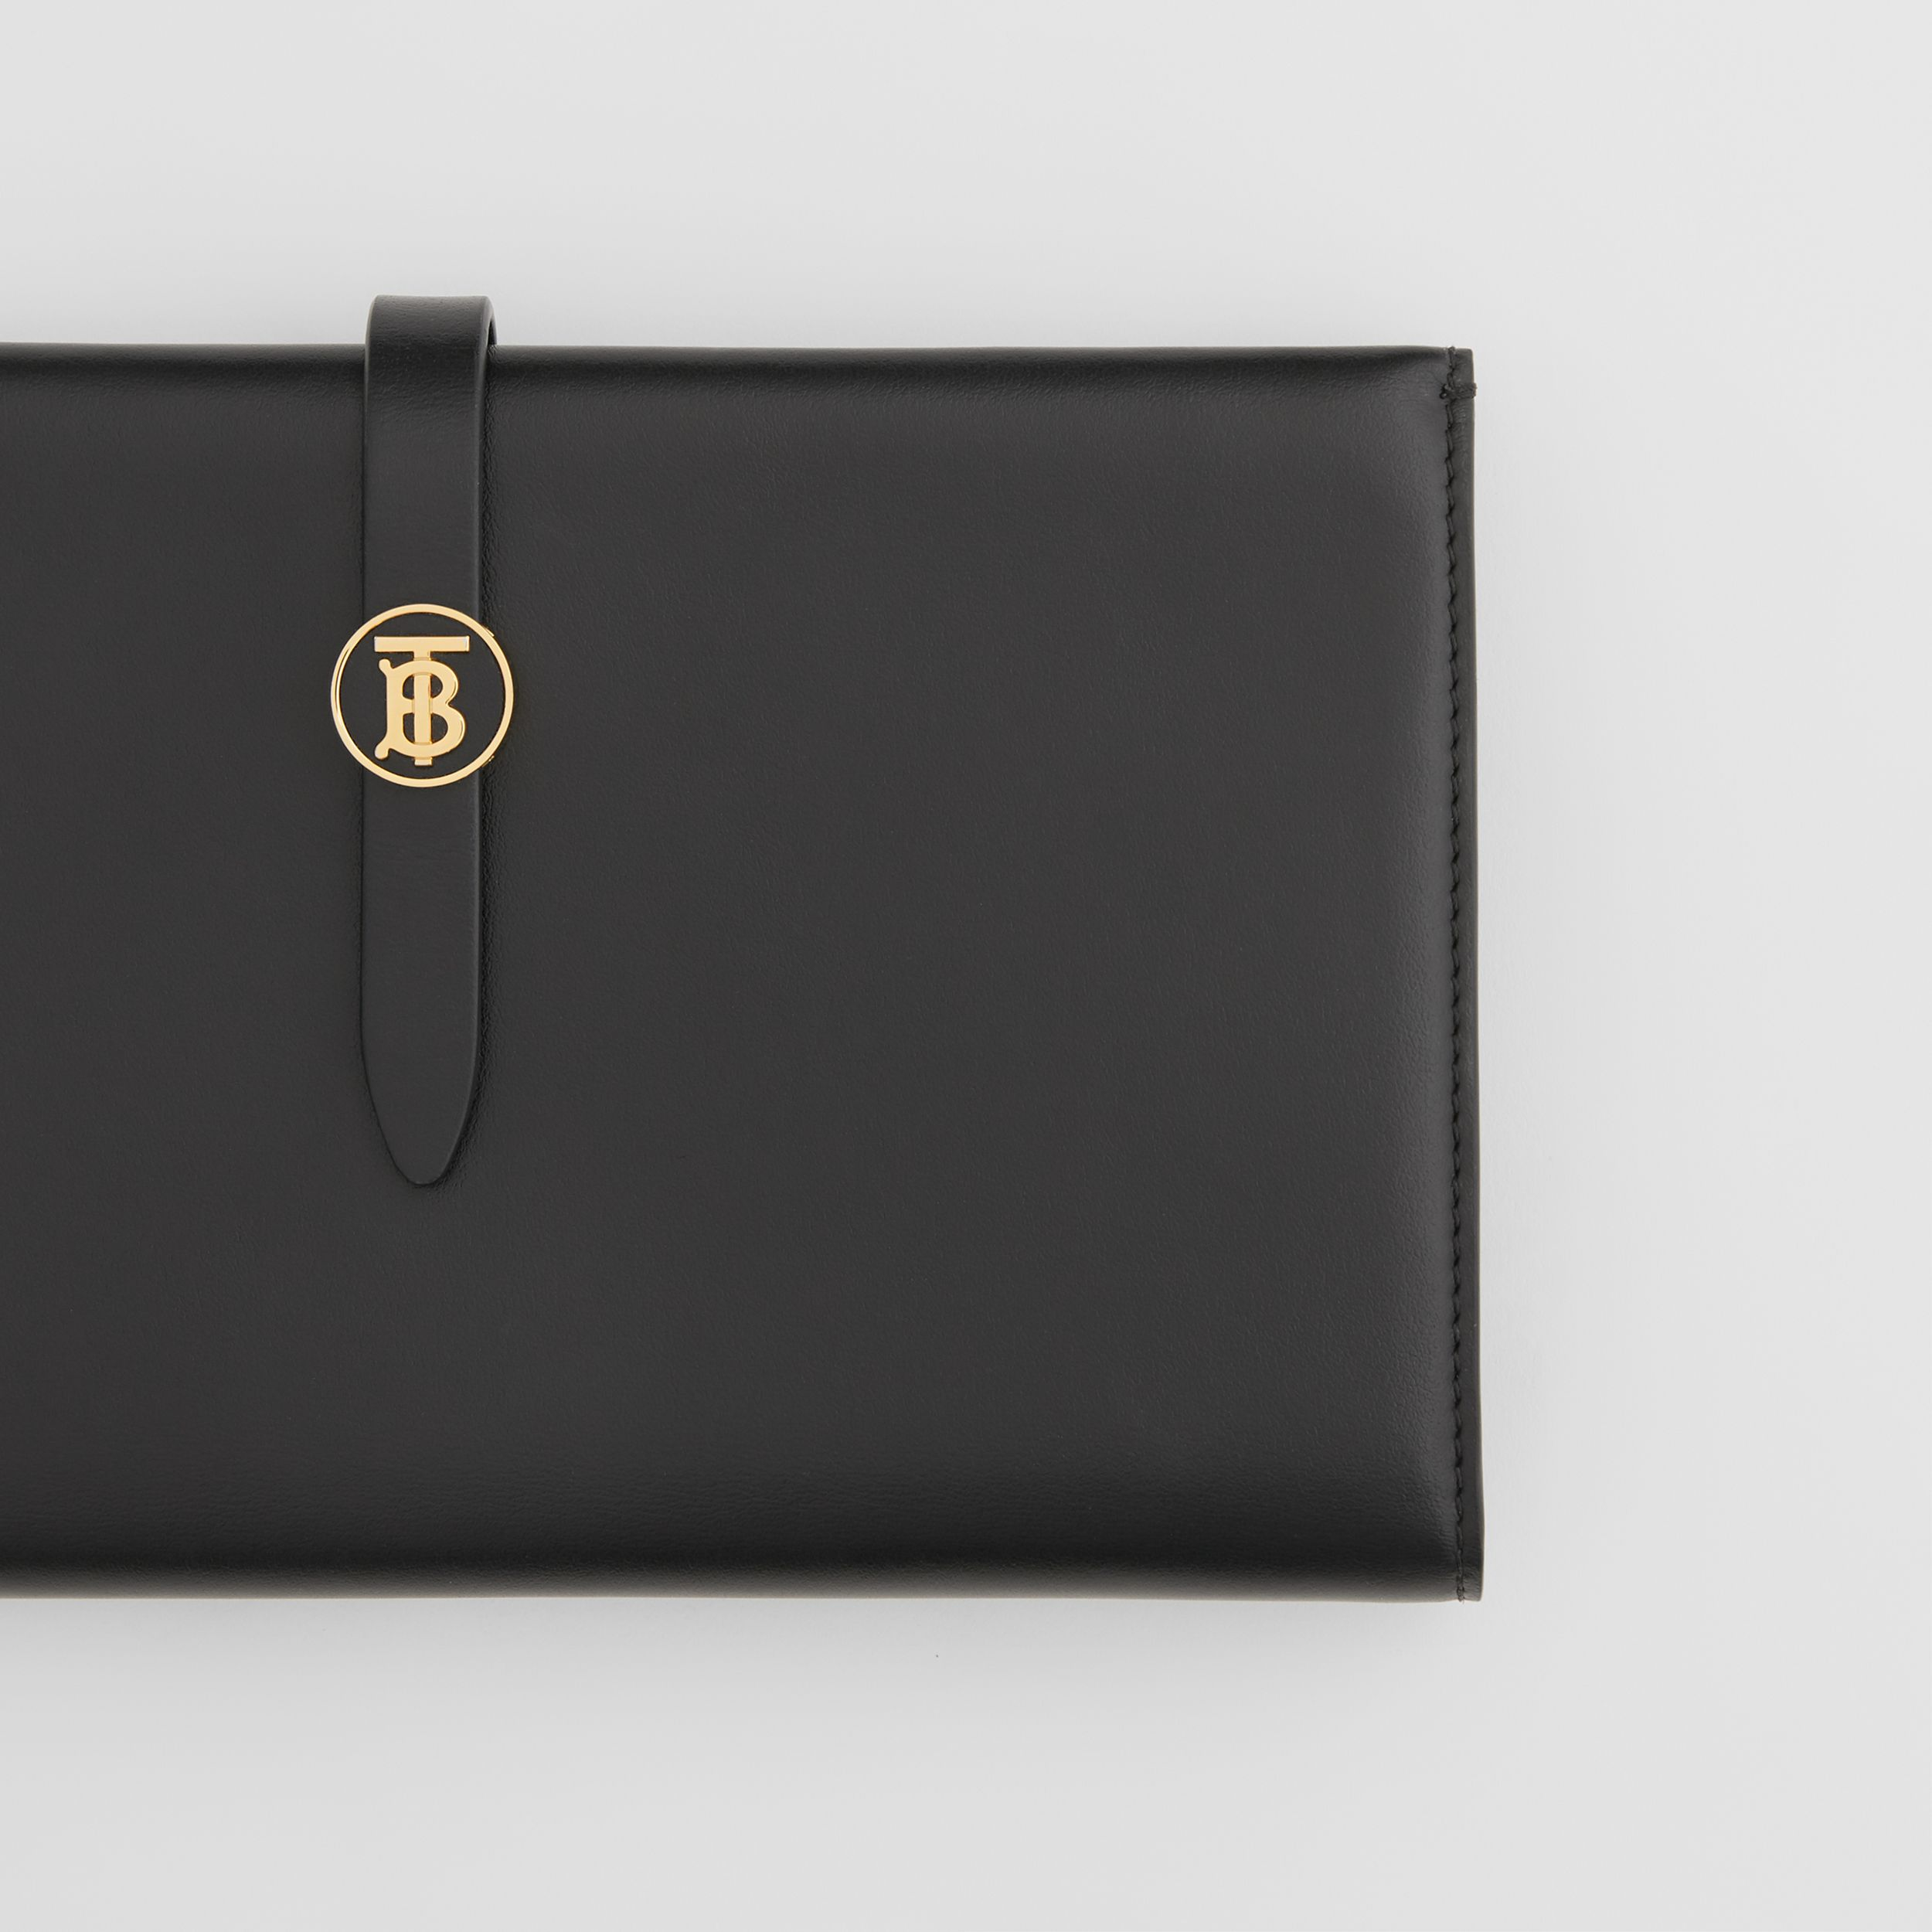 Large Monogram Motif Leather Folding Wallet in Black - Women | Burberry Hong Kong S.A.R. - 2